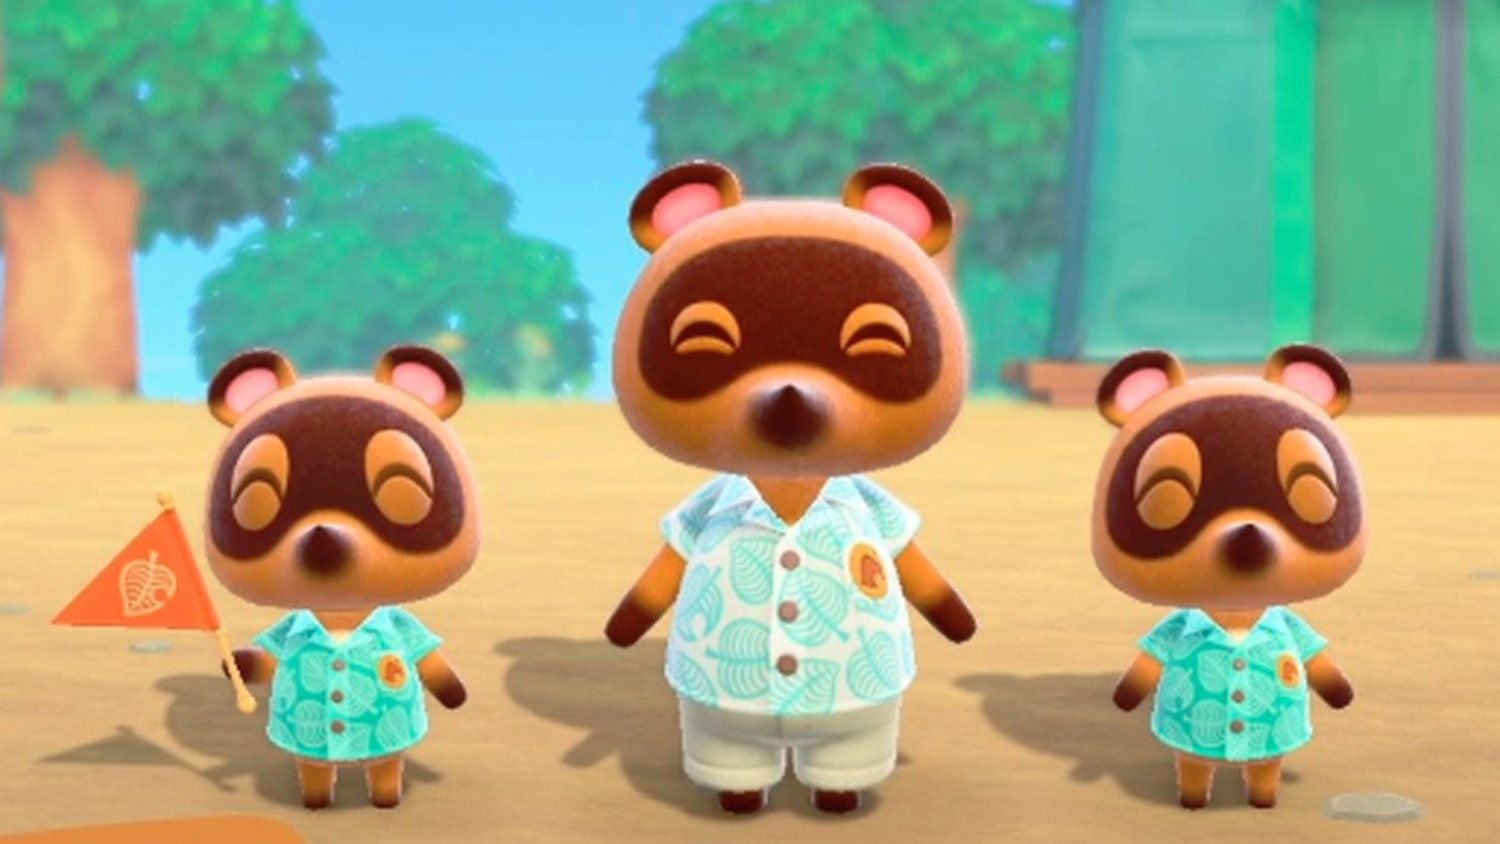 You Can Now Visit The Digital Animal Crossing: New Horizons Exhibition